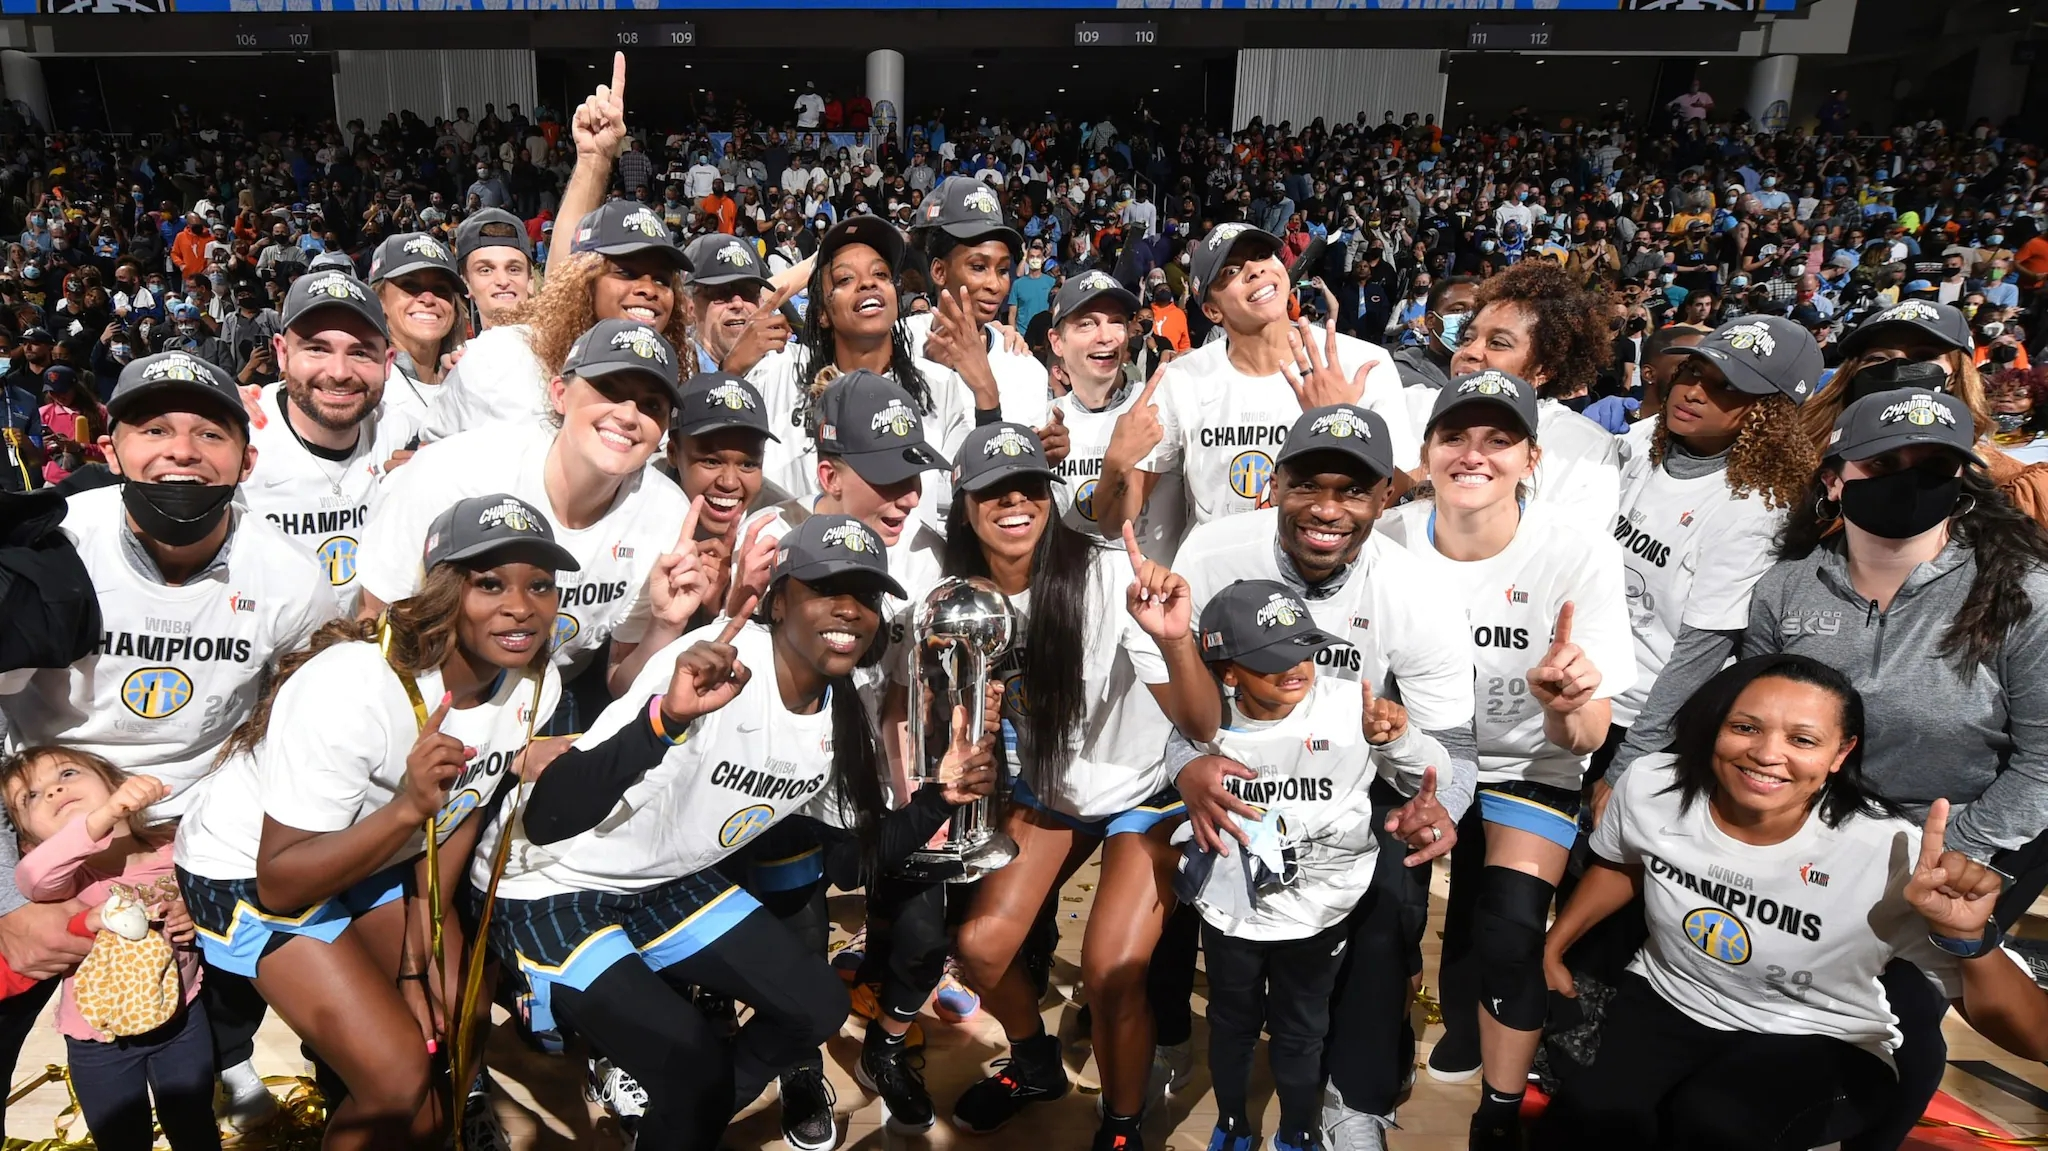 Chicago Sky earns first WNBA championship with 80-74 triumph over Phoenix Mercury